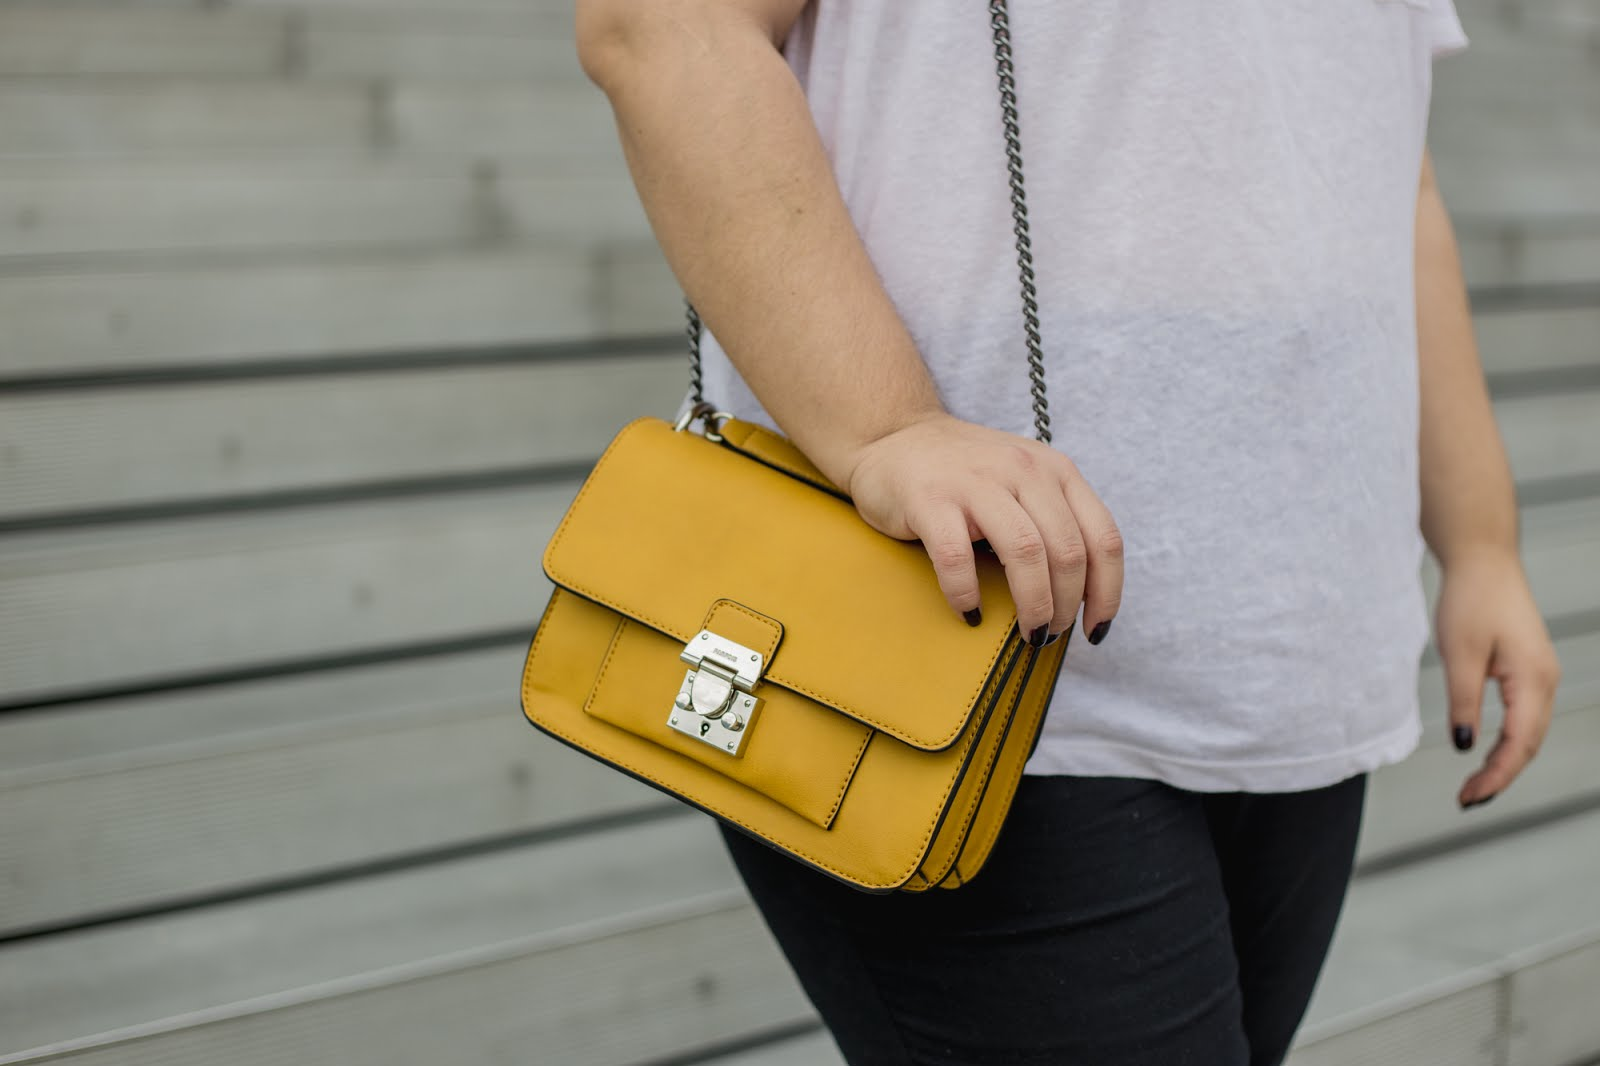 Outfit of the day - White t-shirt, jeans and a mustard yellow bag by The Paper and Ink